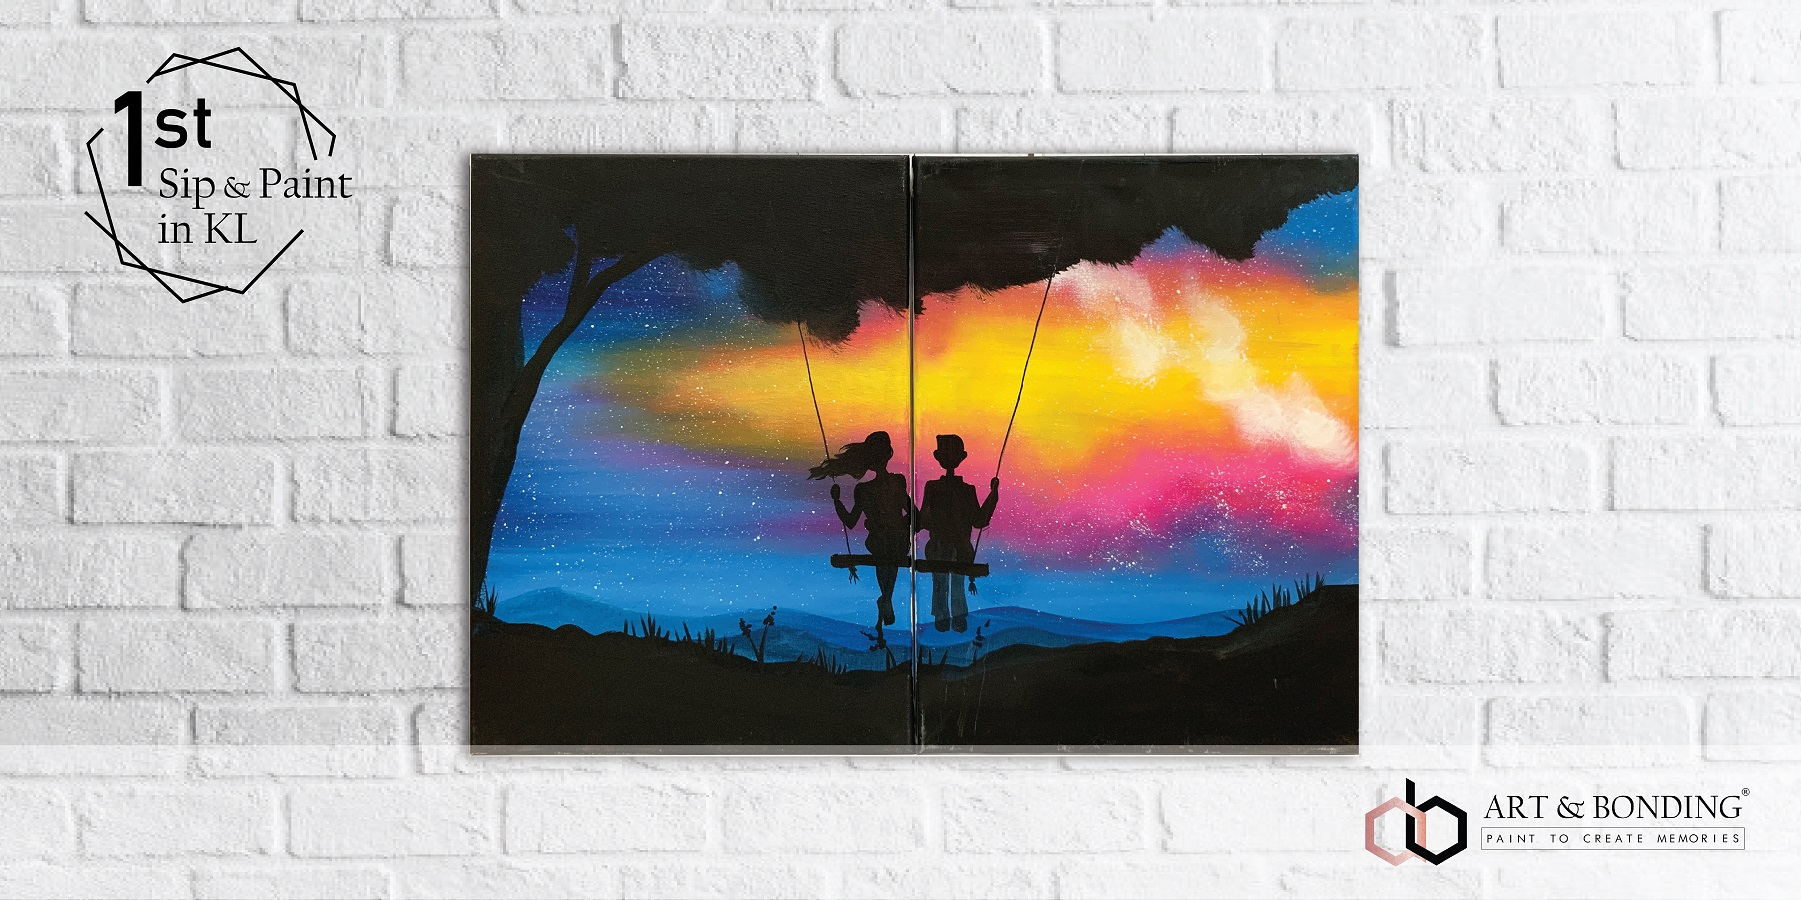 fantasy-swing-painting-art-class-kl-wine-date-night-couple-02